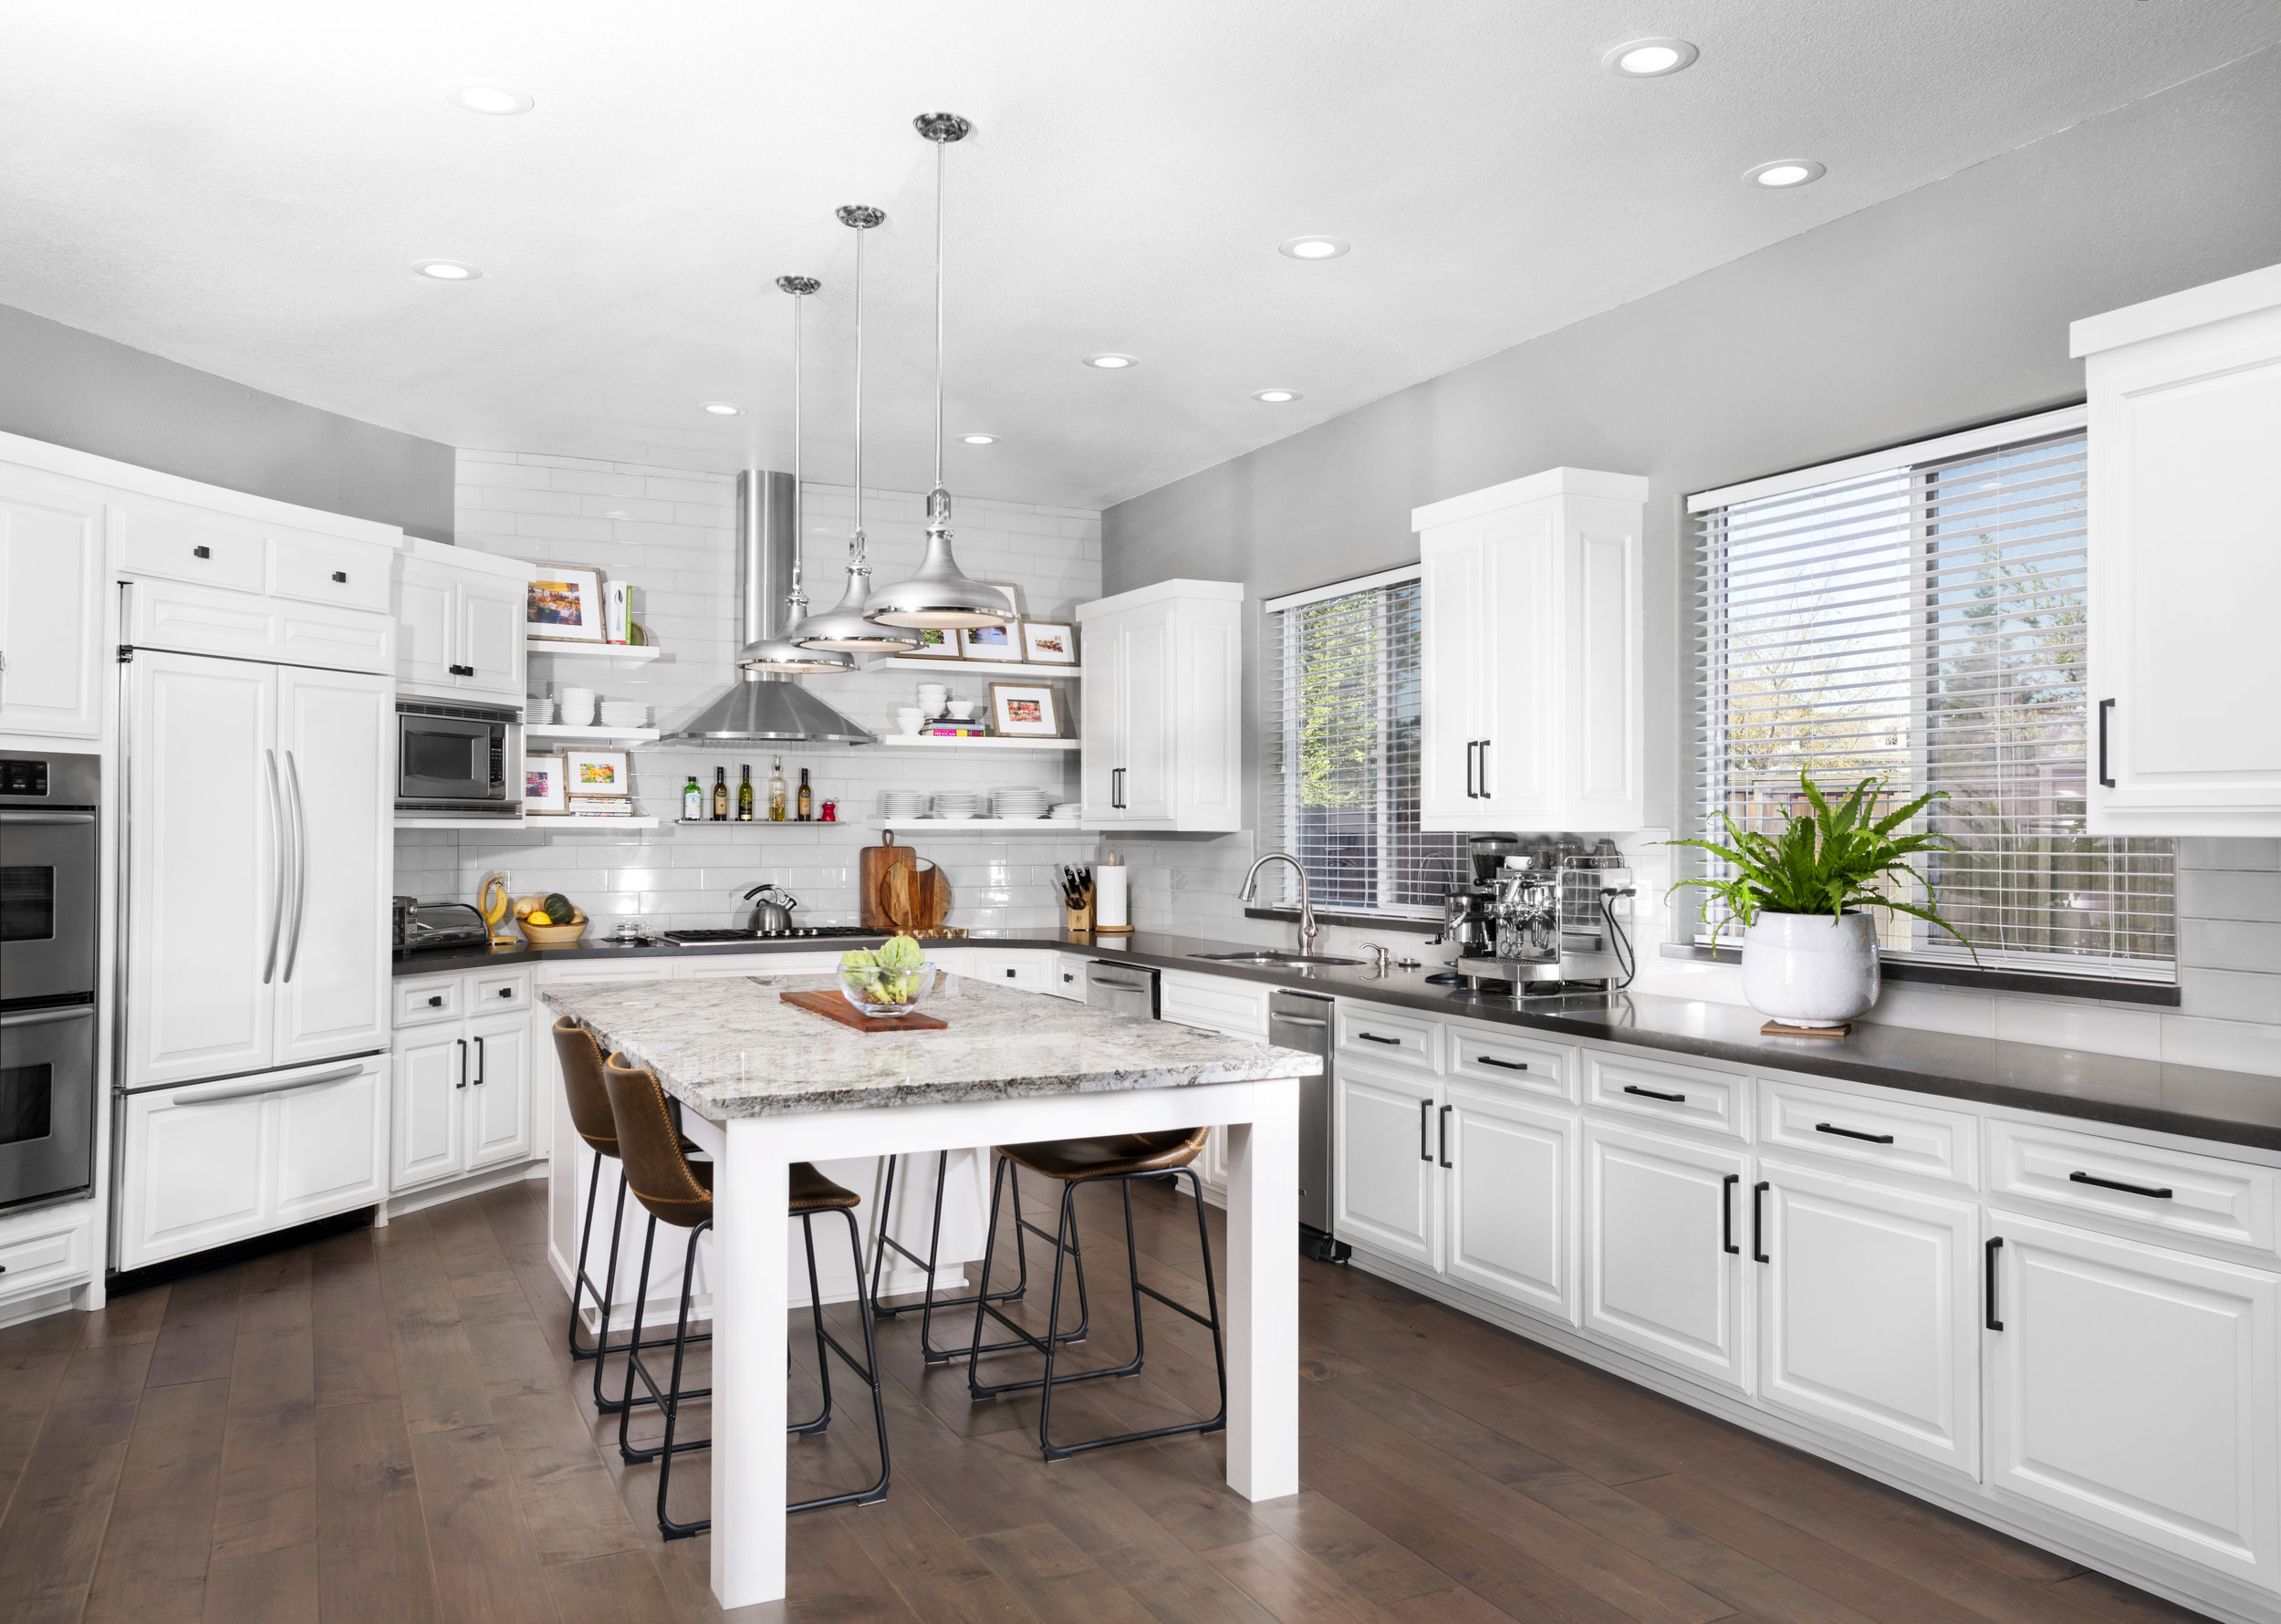 PRoject Roseville - Interior Designer: Ashlee Cravens